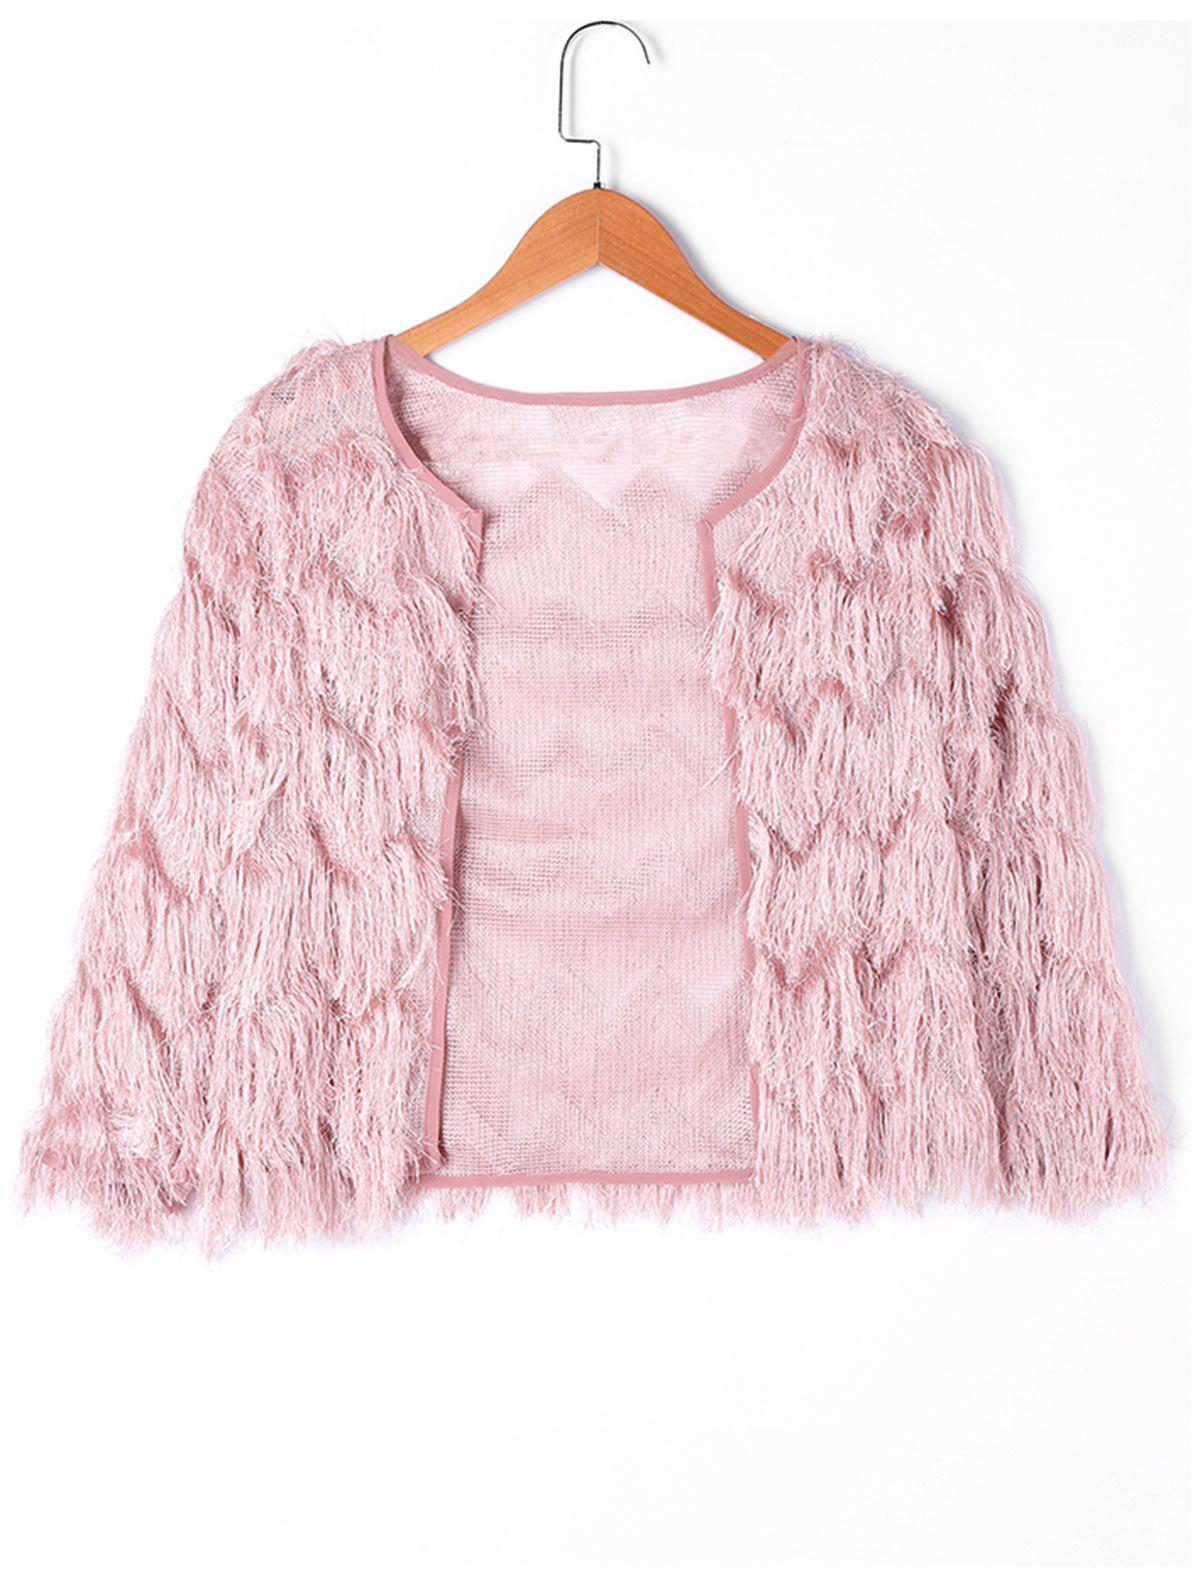 Plain Short Fringed Jacket - SHALLOW PINK L